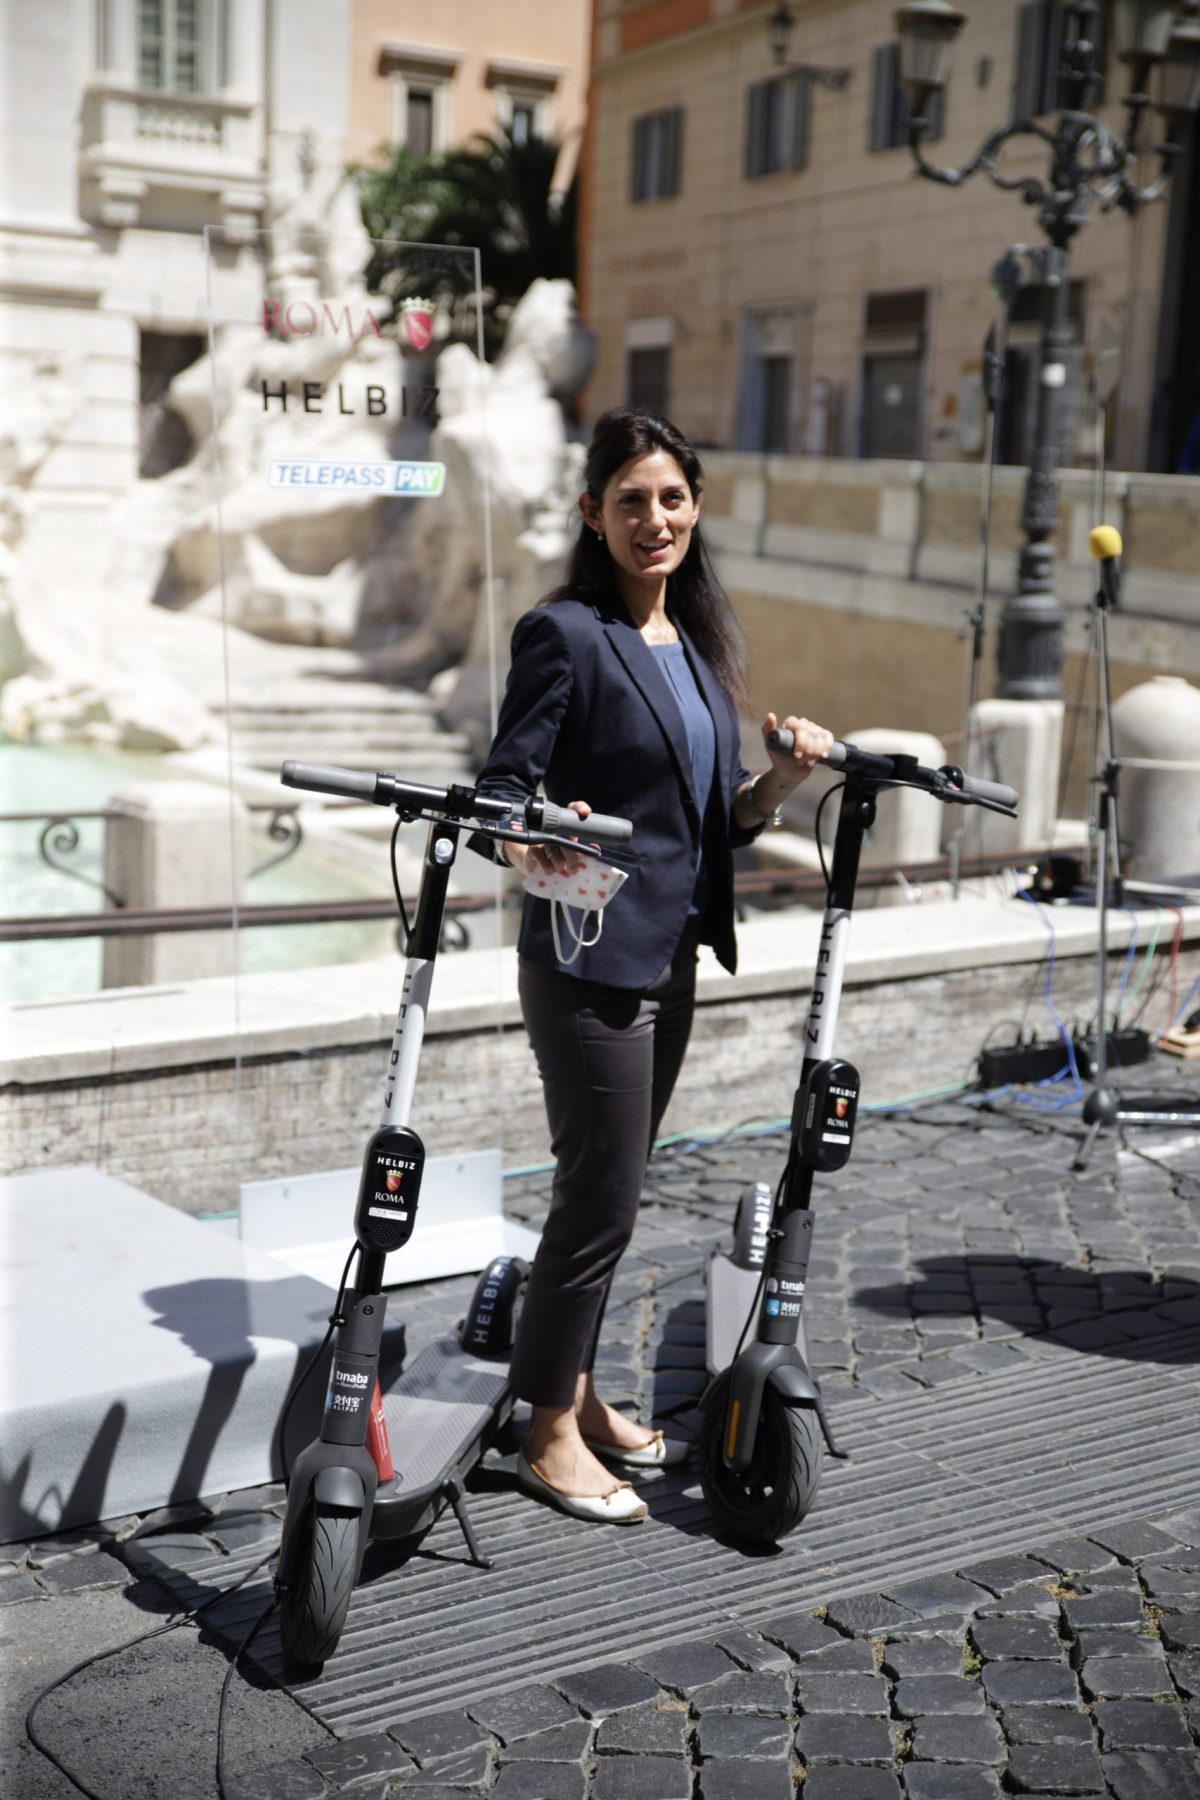 Mayor of Rome, Virginia Raggi with Helbiz e-scooters